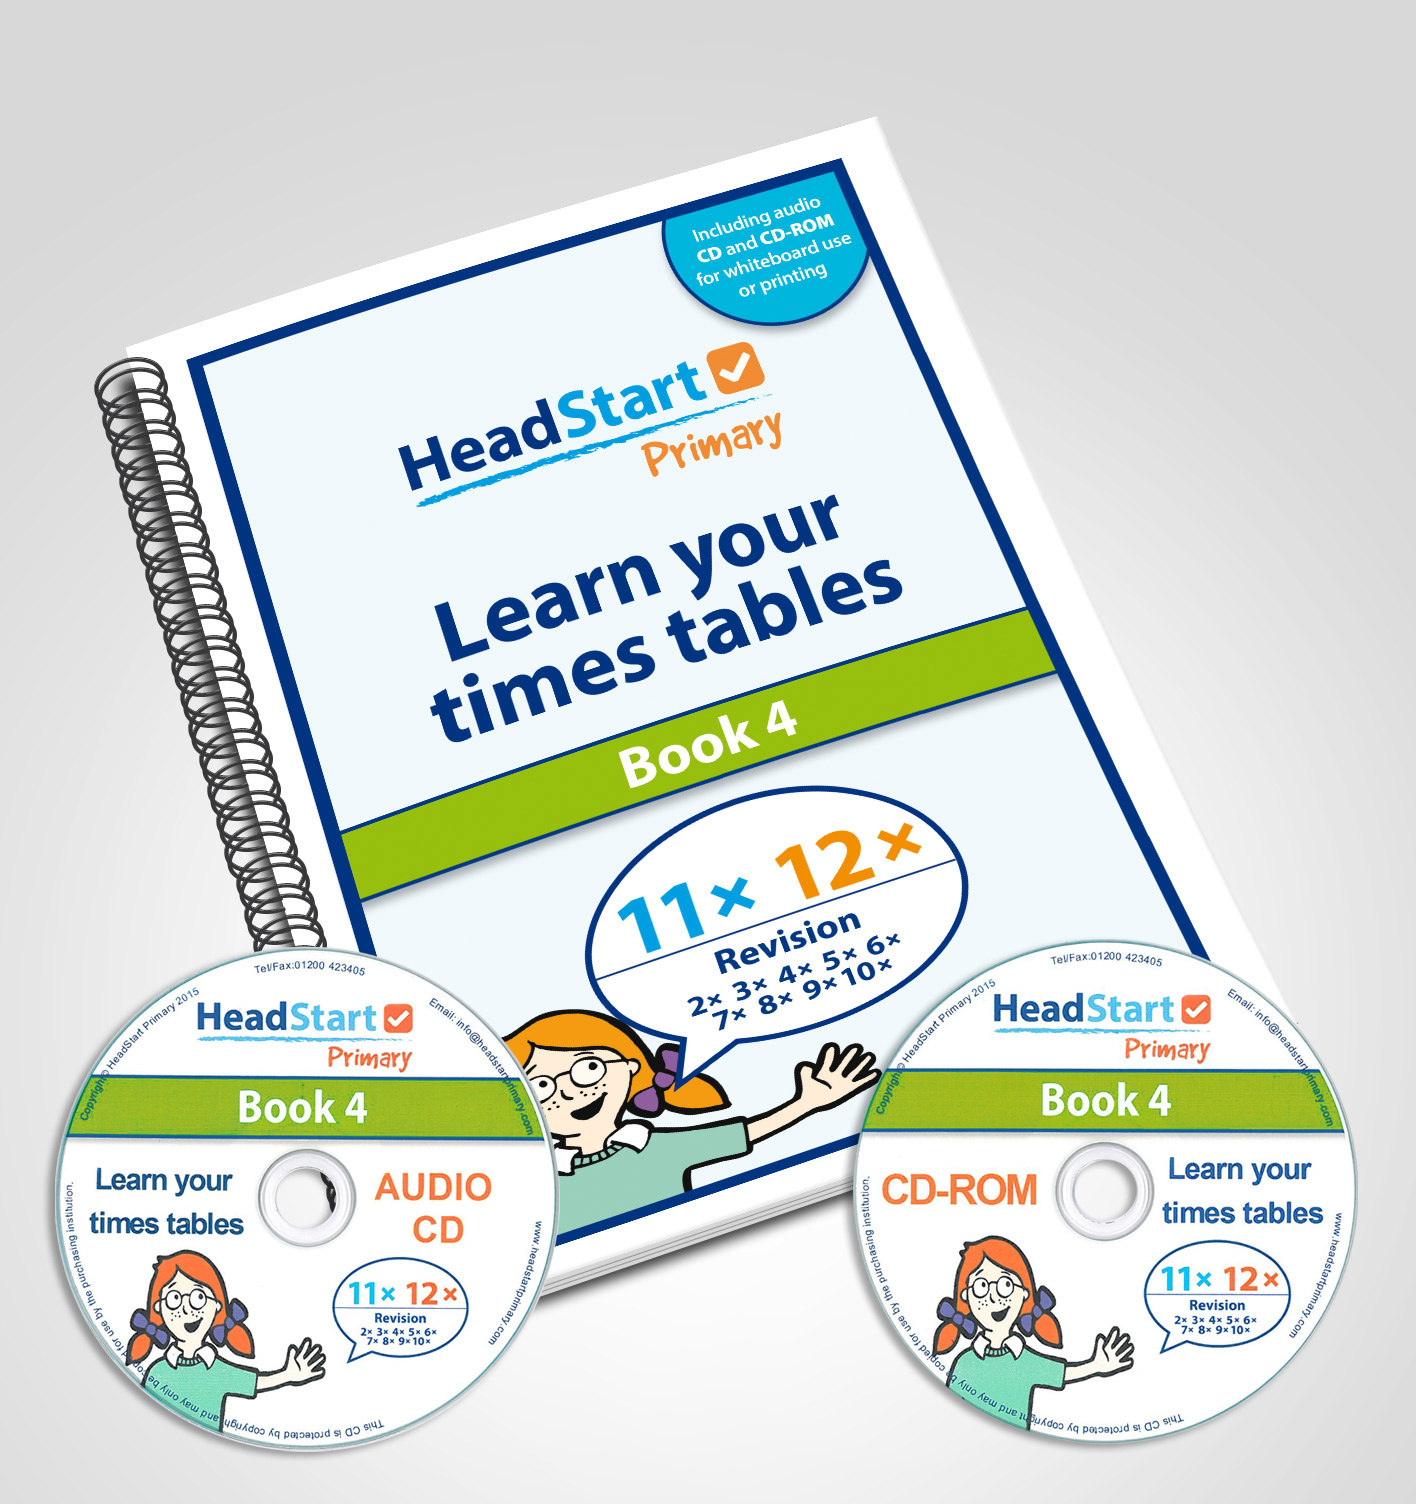 Learn your times tables book 4 11x 12x and revision for 11x table